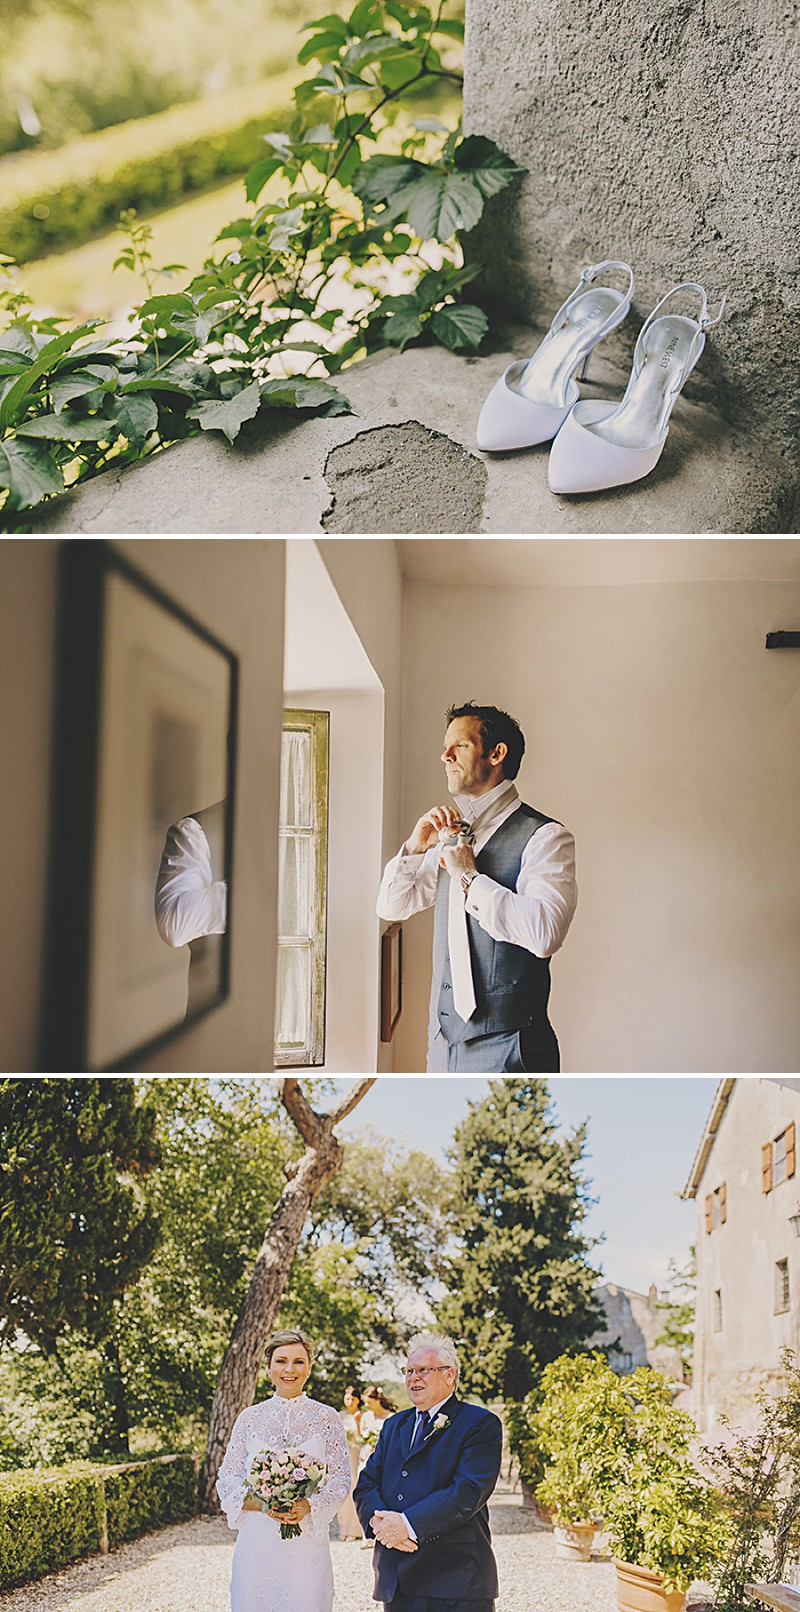 An Italian Destination Wedding At Borgo di Tragliata Near Rome With A Vintage Crotchet Wedding Dress and Sorbet Rose Bouquet Photographed By Mark Pacura._0002